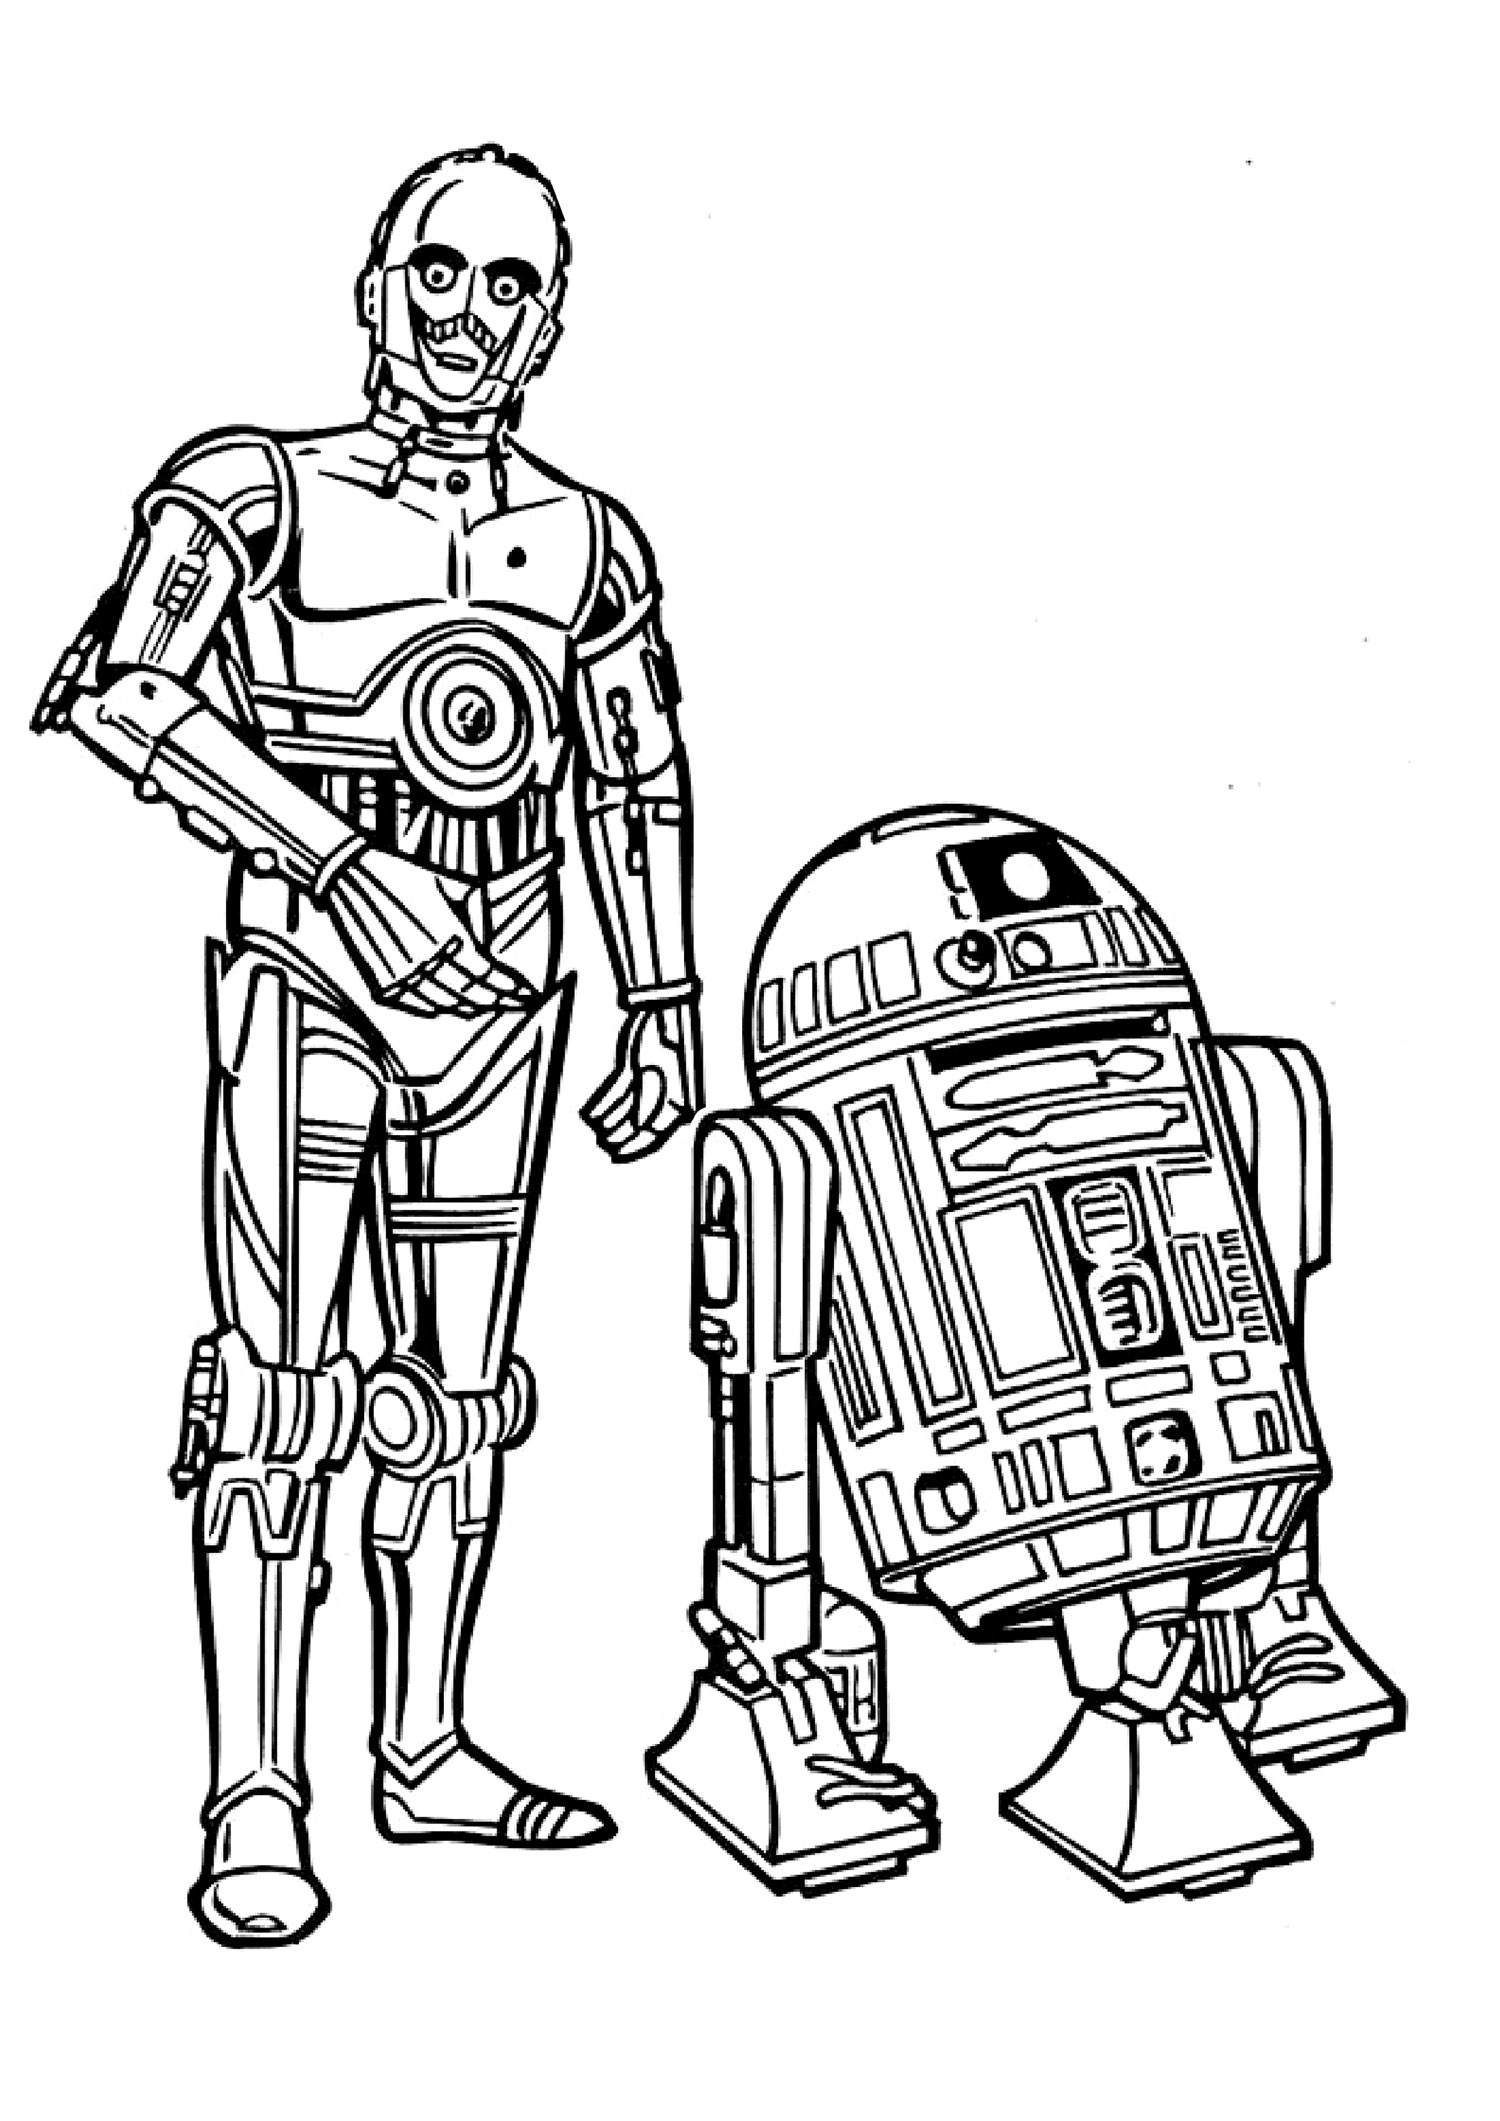 R2d2 Line Drawing at GetDrawings | Free downloadR2d2 And C3po Drawing